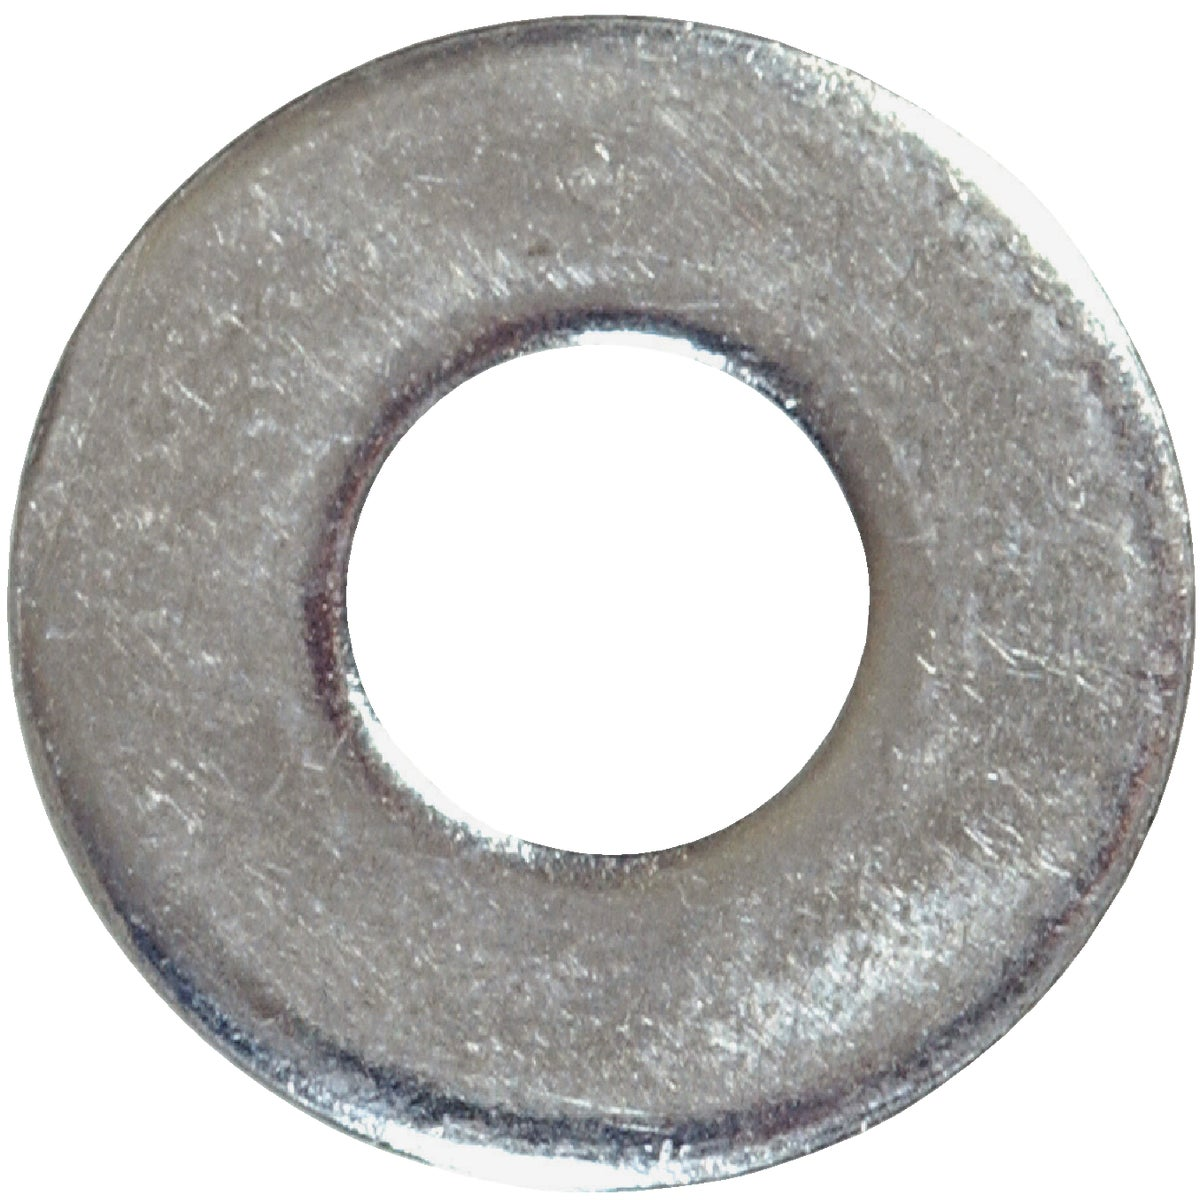 100PC #10 SAE FL WASHER - 280054 by Hillman Fastener